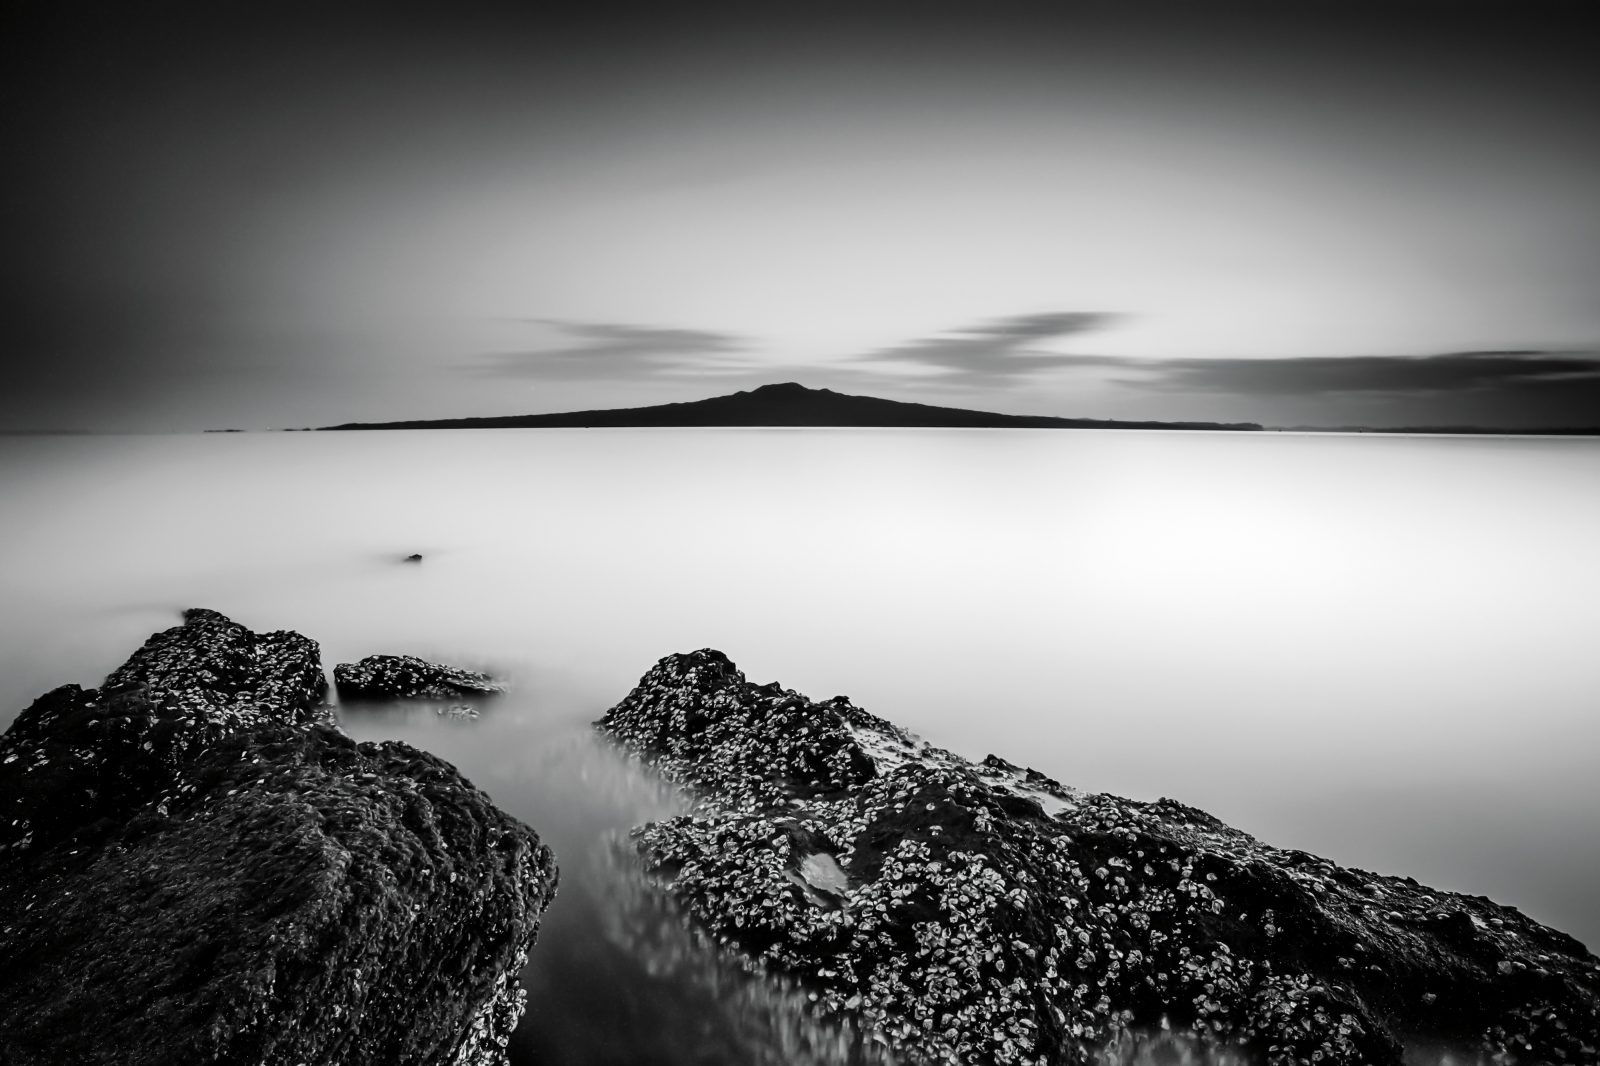 "Making long exposures of seascapes is a passion for photographer Susan Blick. ""It allows me to blend photography with art and gives an image a story,"" she says. This one, taken from Auckland's North Shore facing Rangitoto Island, was made during a peaceful sunrise ""where the sea was calm and the light fantastic"". An exposure of more than 500 seconds gives the image a soft, dreamy feel."